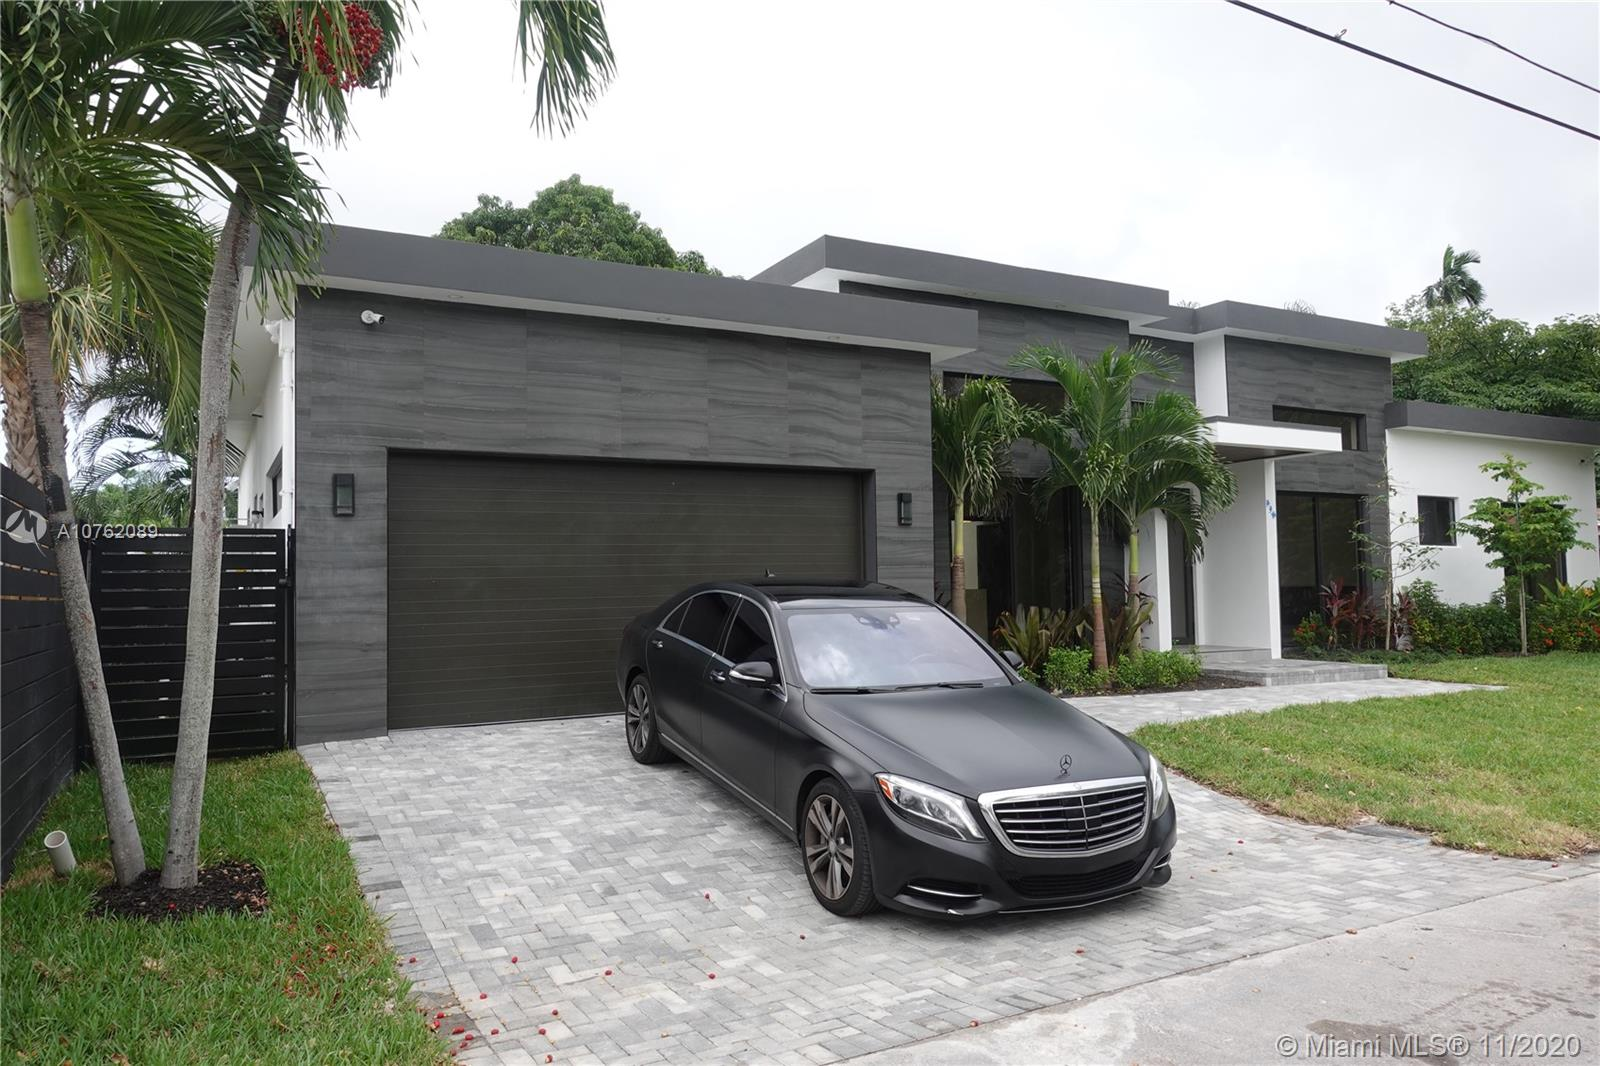 New construction, Modern open design, high celling,HOUSE IS GOING TO BE 3023 SF 2563 UNDER AIR (not as it shows on tax)renders will not be followed as shown on MLS, but will be similar